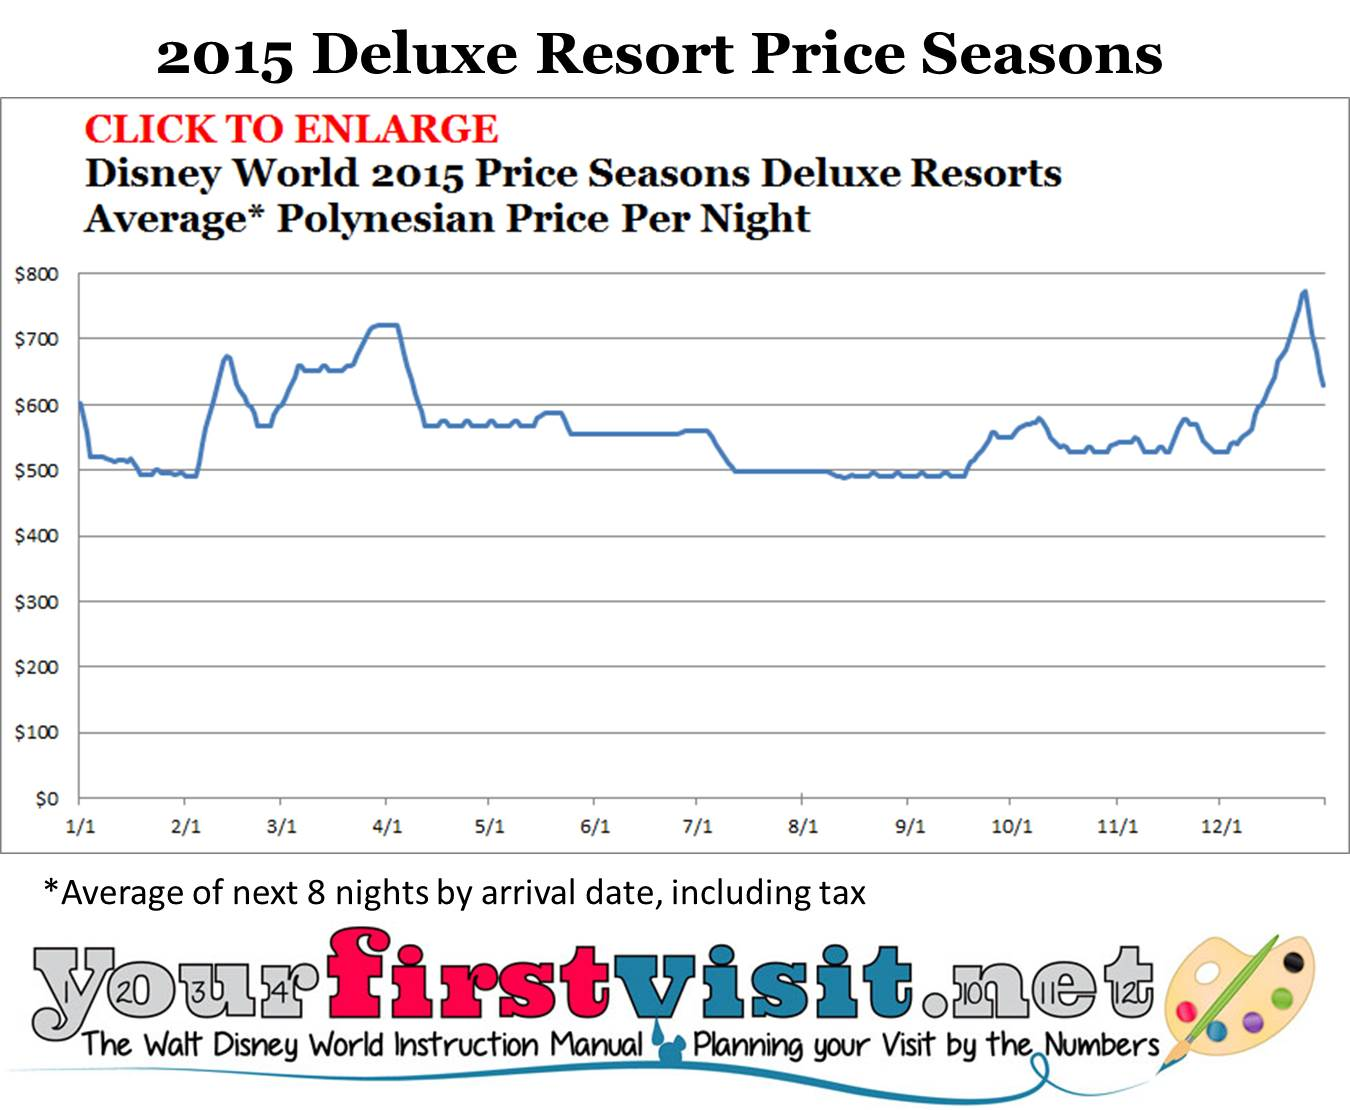 Disney World 2015 Deluxe Resort Price Seasons from yourfirstvisit.net